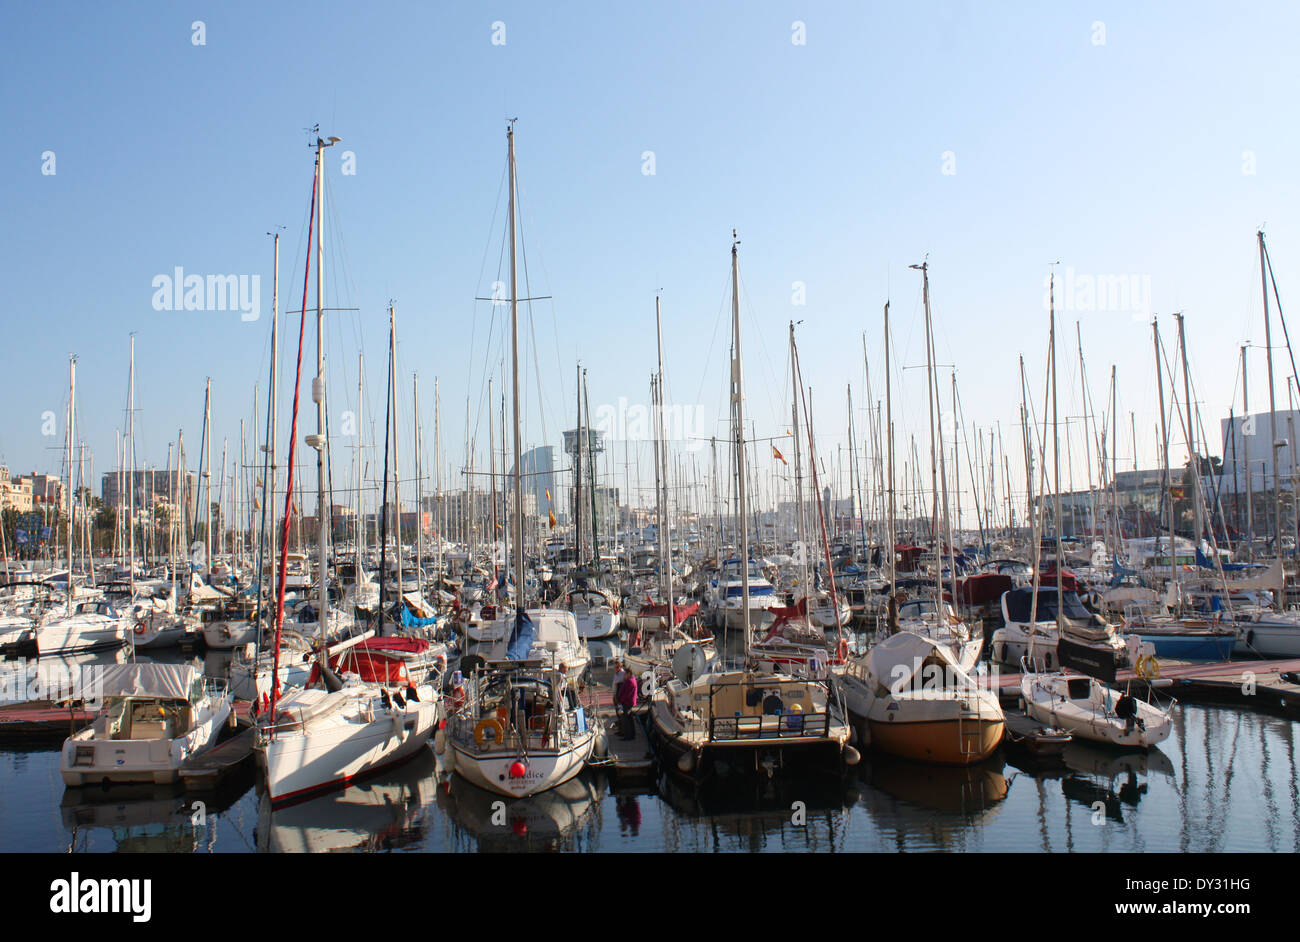 Boats in a habour in Barcelona city, Spain Stock Photo